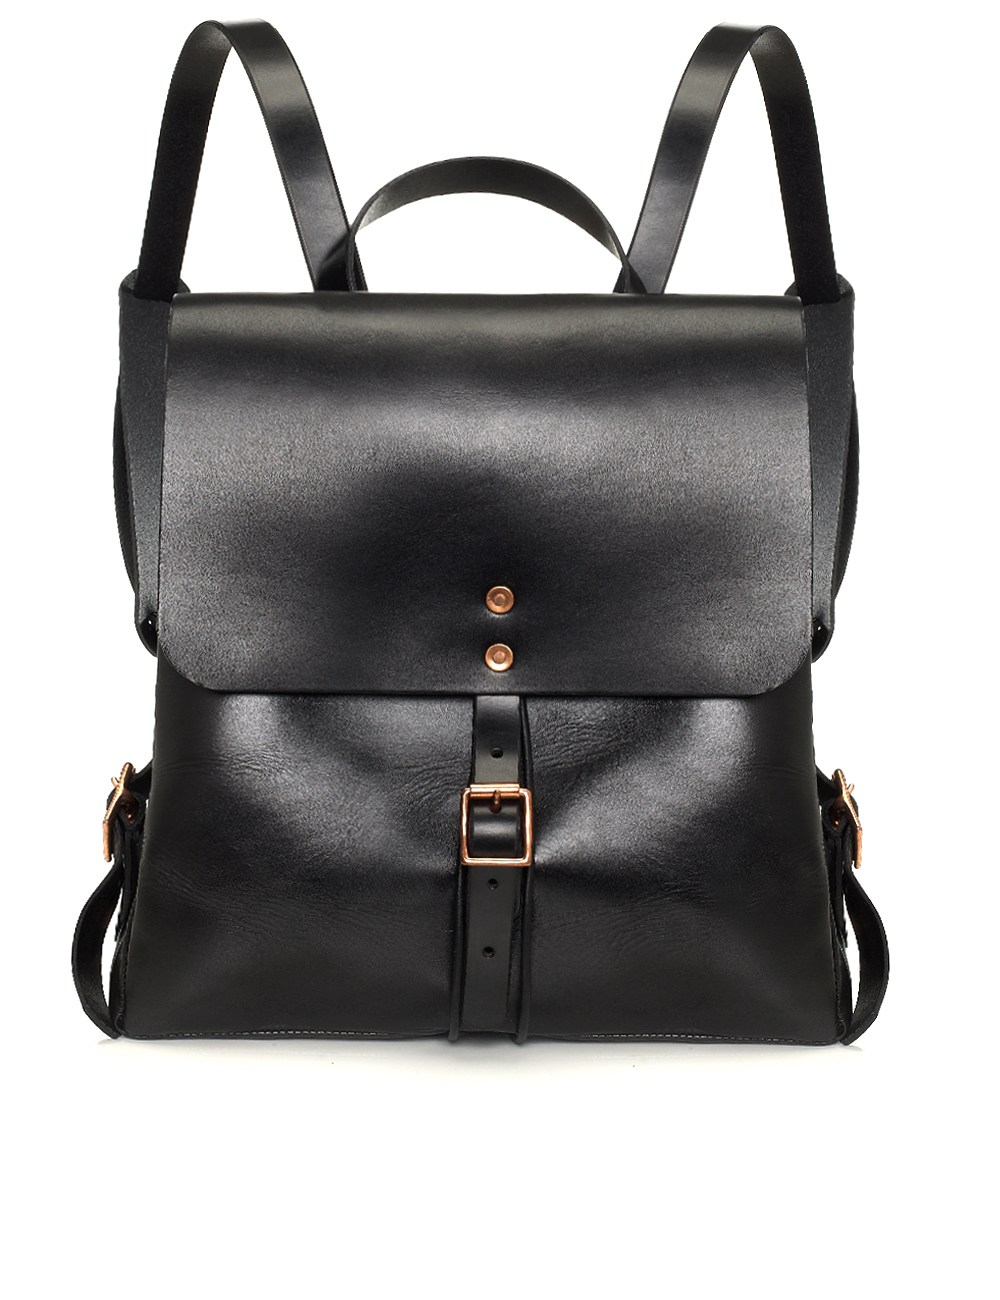 Womens Black Leather Backpack 064mZzb8